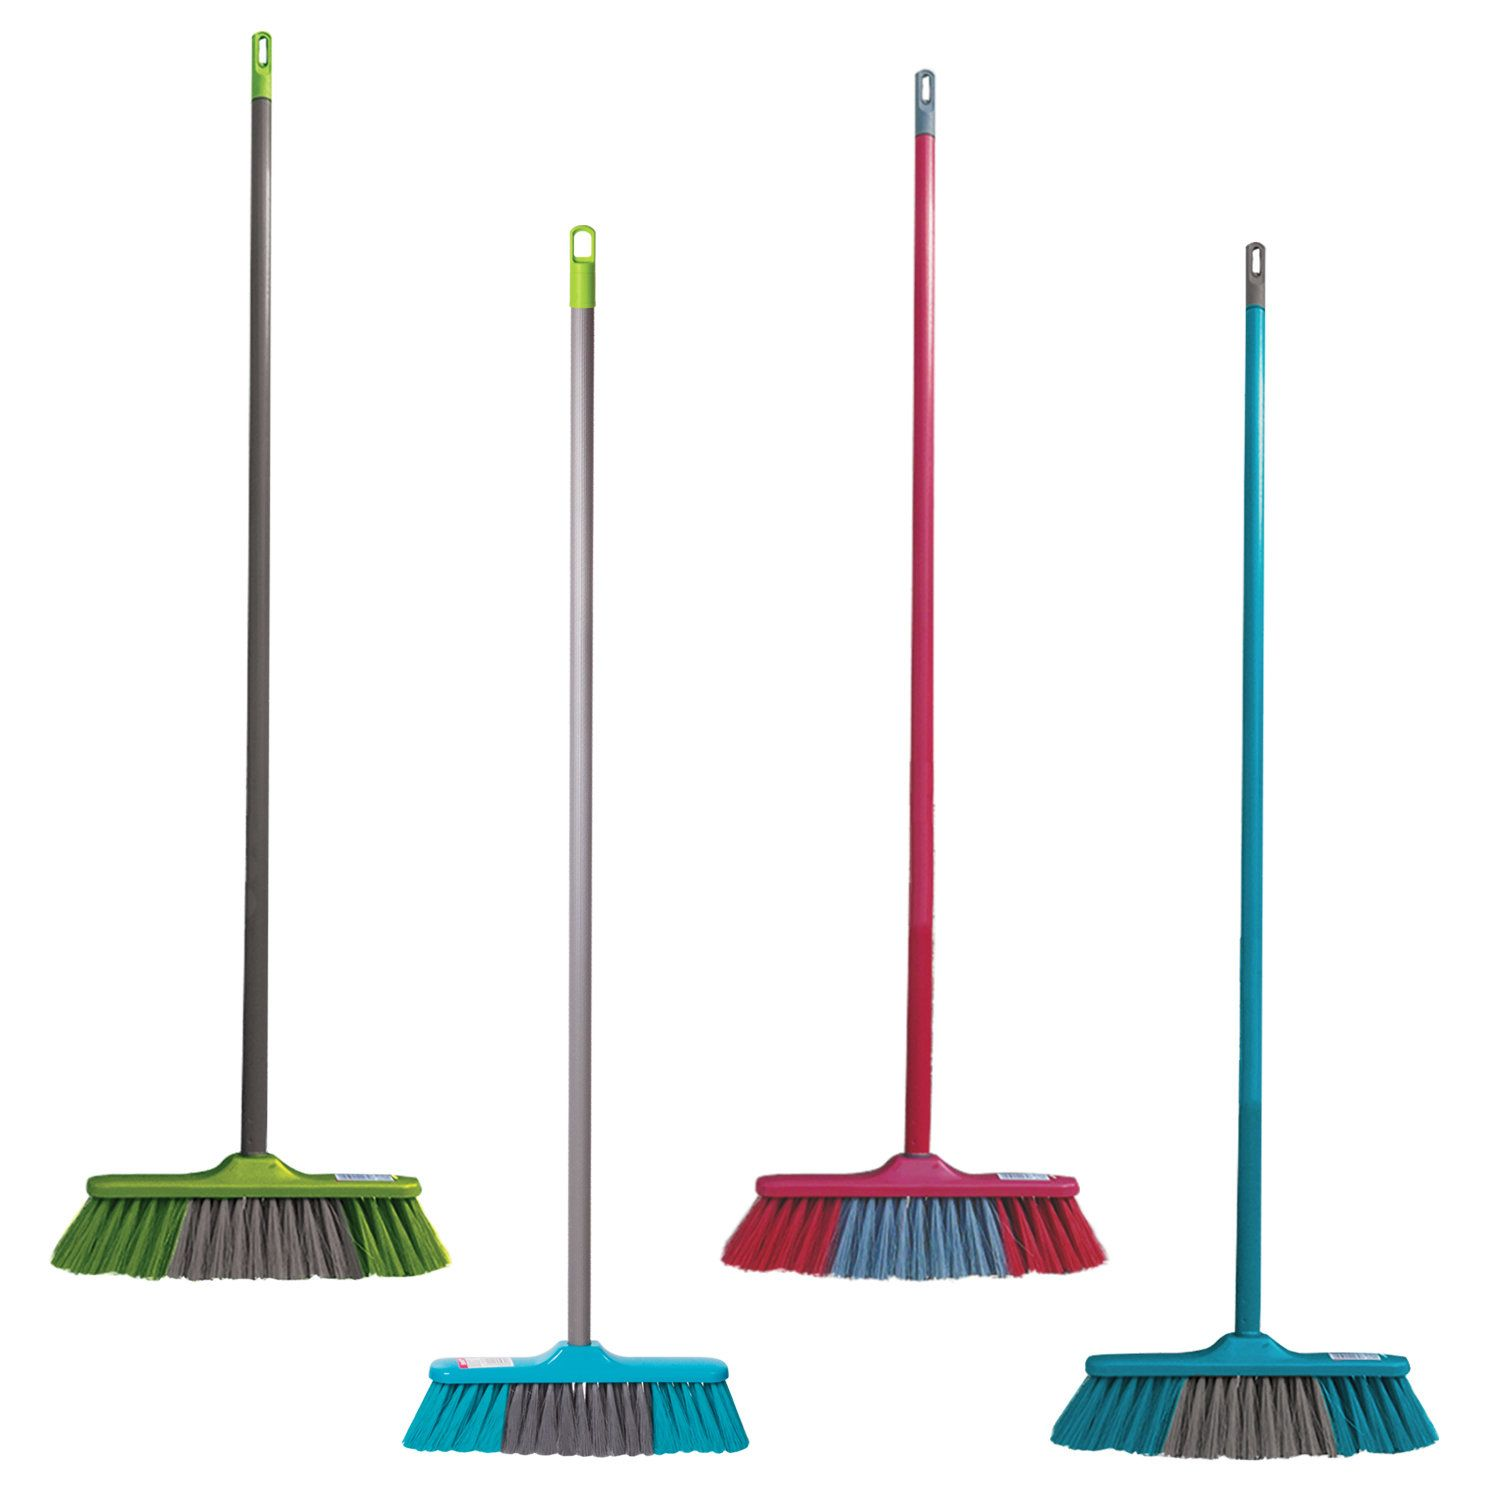 """YORK / Brush """"Frontiera"""" for cleaning with a handle 110 cm, width 31 cm, bristles 7 cm, plastic, European thread"""